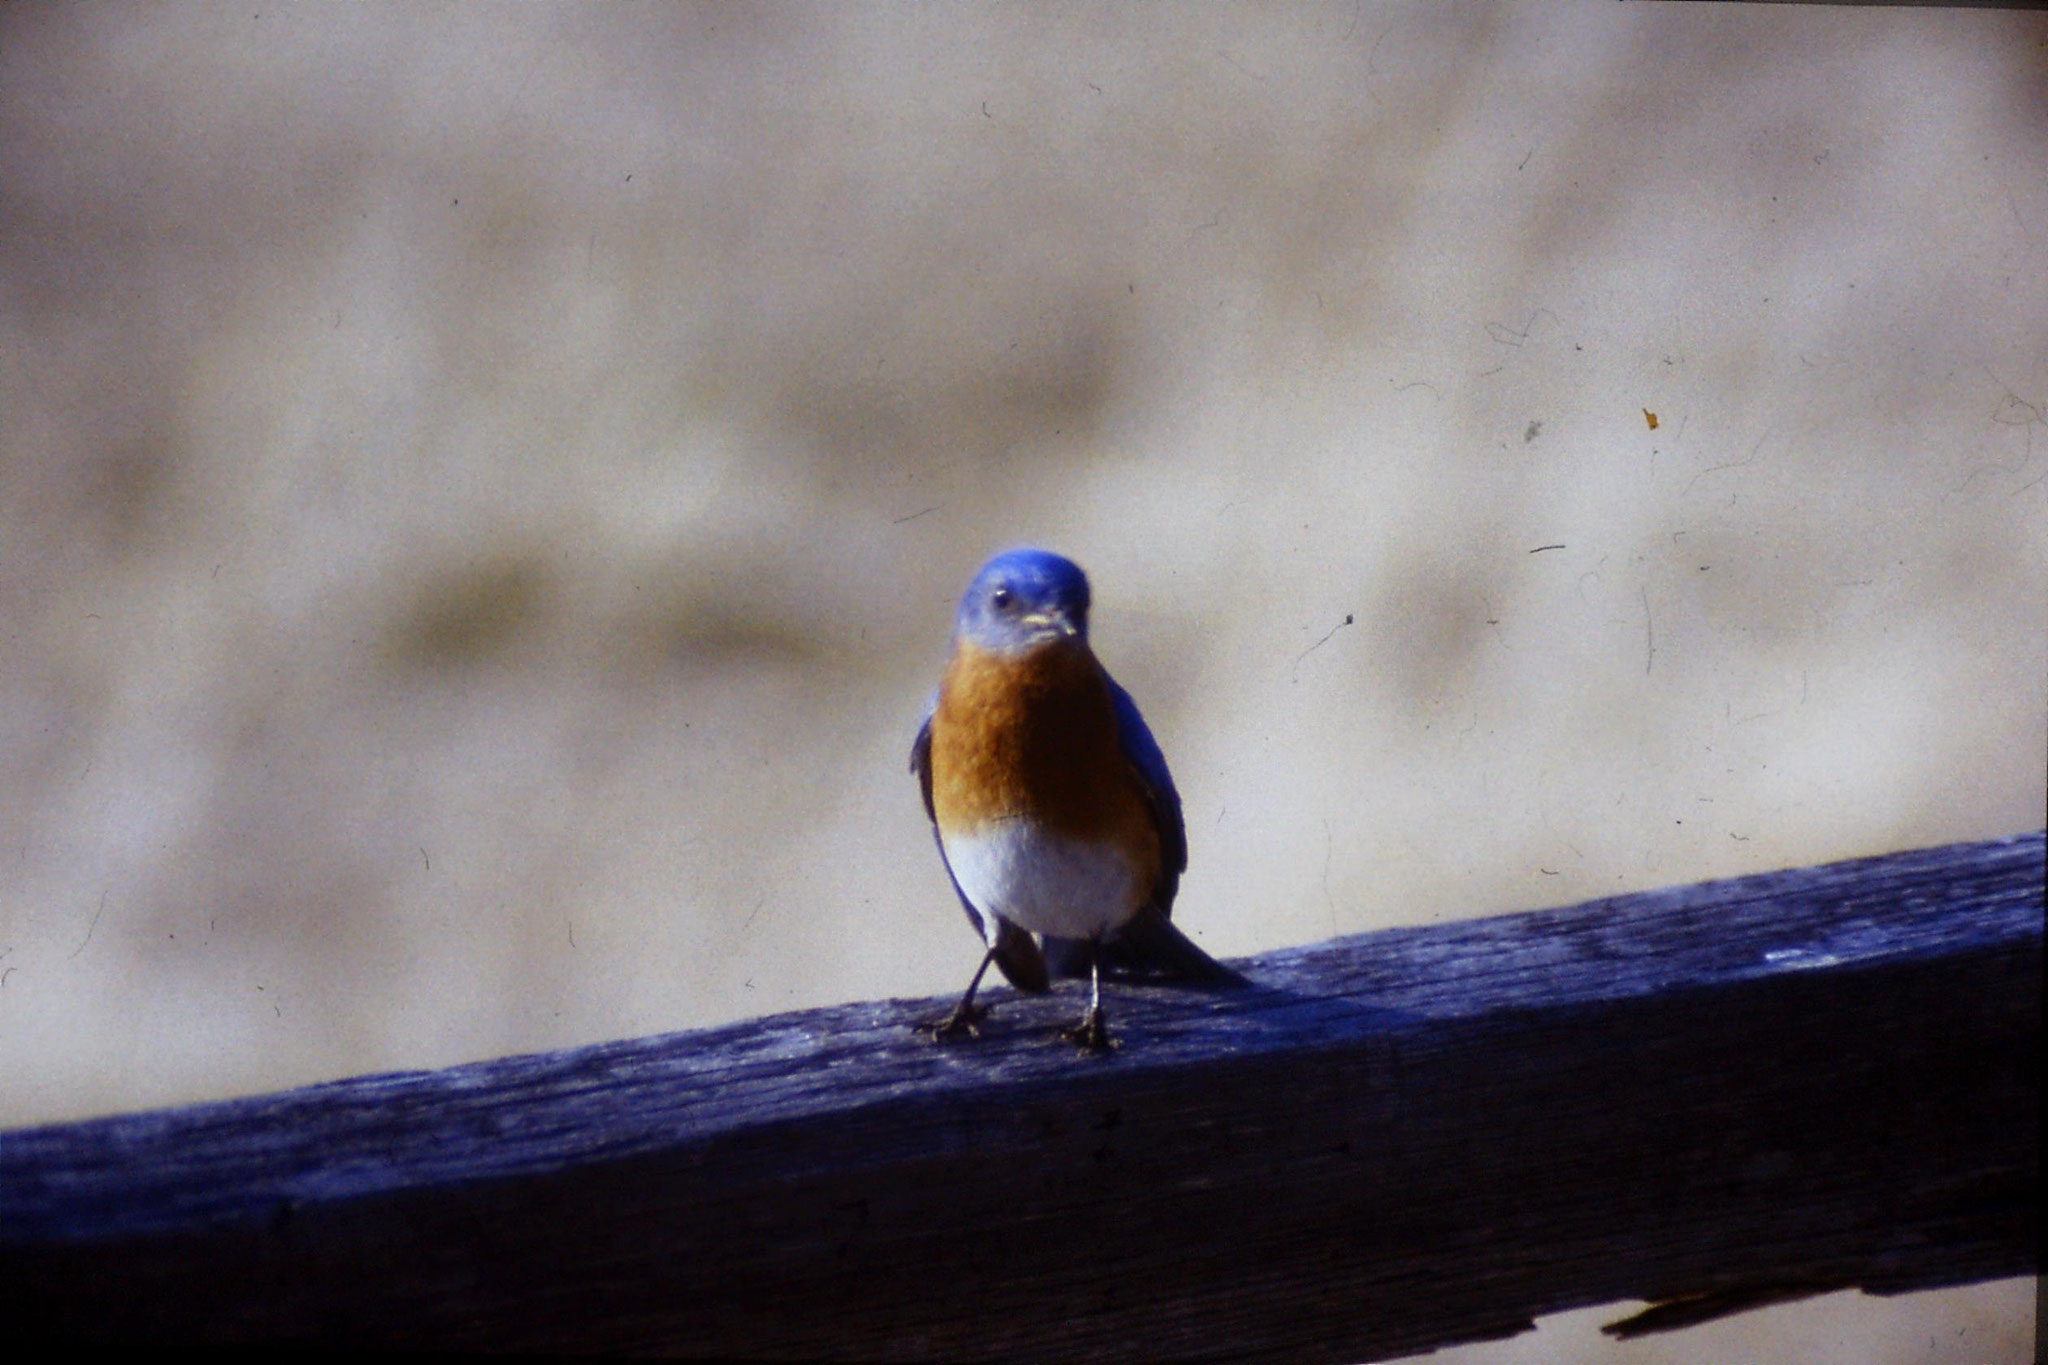 21/3/1991: 7: Blue Bird at Mary Potter's place